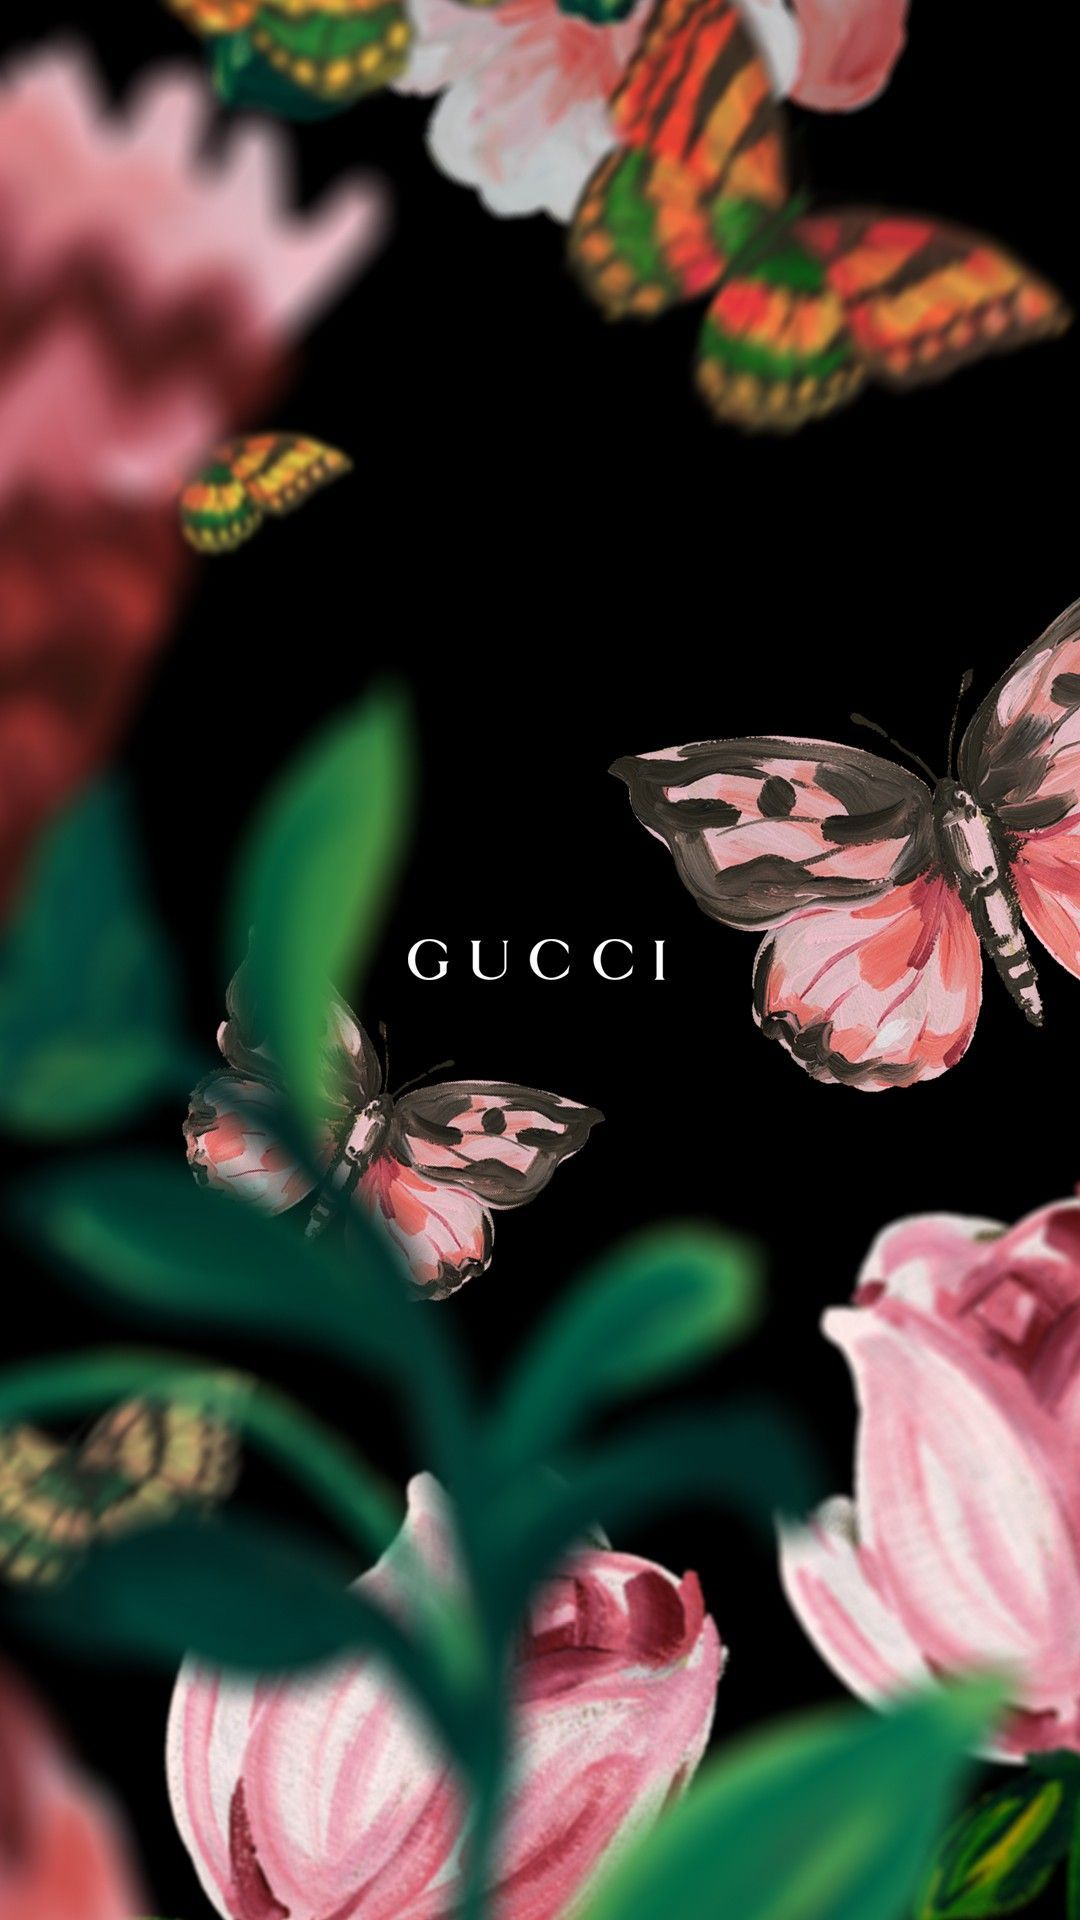 Gucci Wallpapers for iPhone Mobile | PixelsTalk.Net | Trend